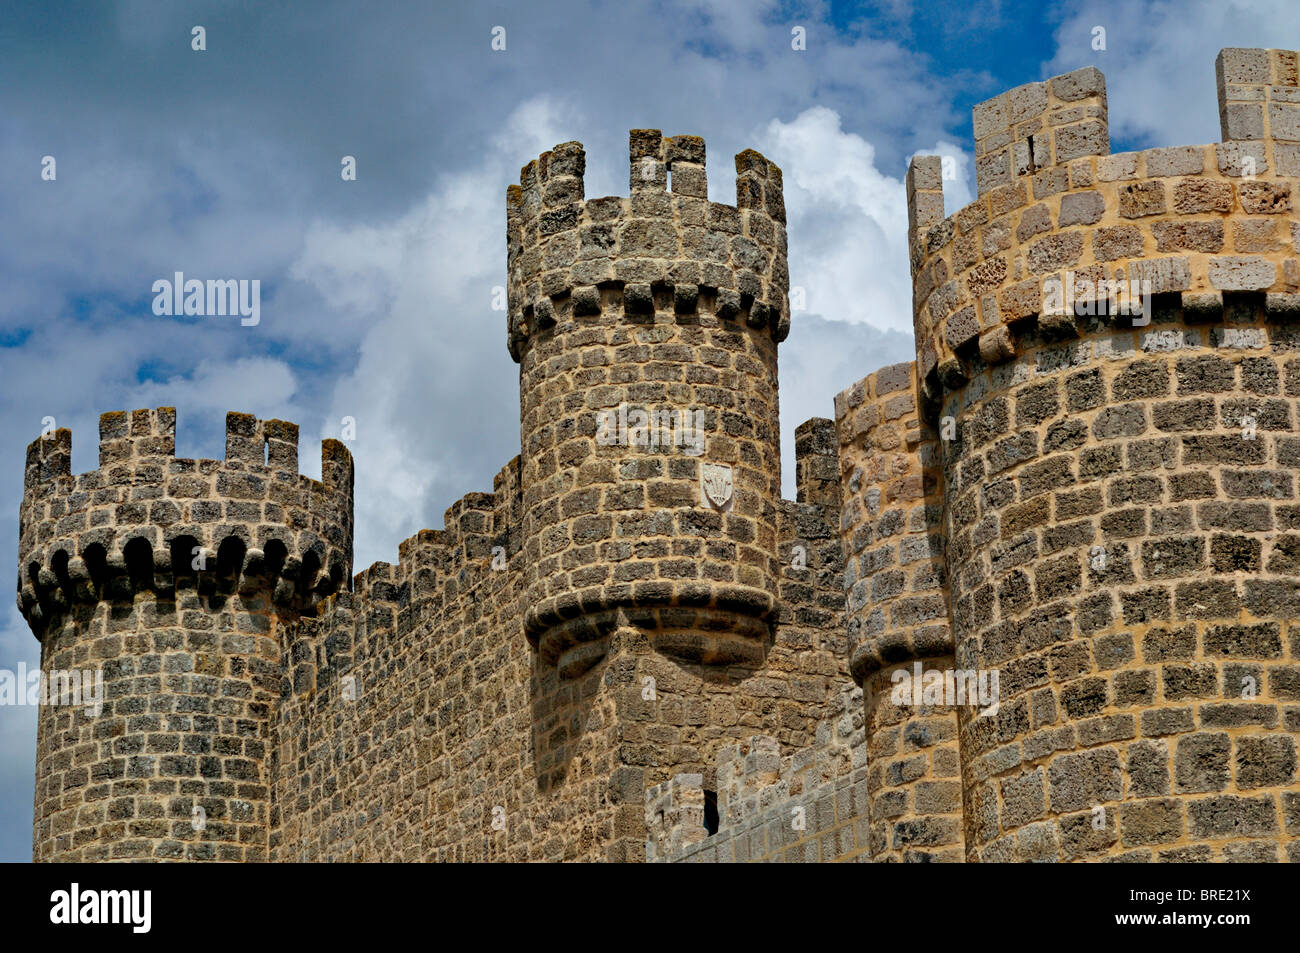 Spain, St. James Way: Hotel and castle 'Senorio de Olmillos' in Olmillos de Sesamón - Stock Image